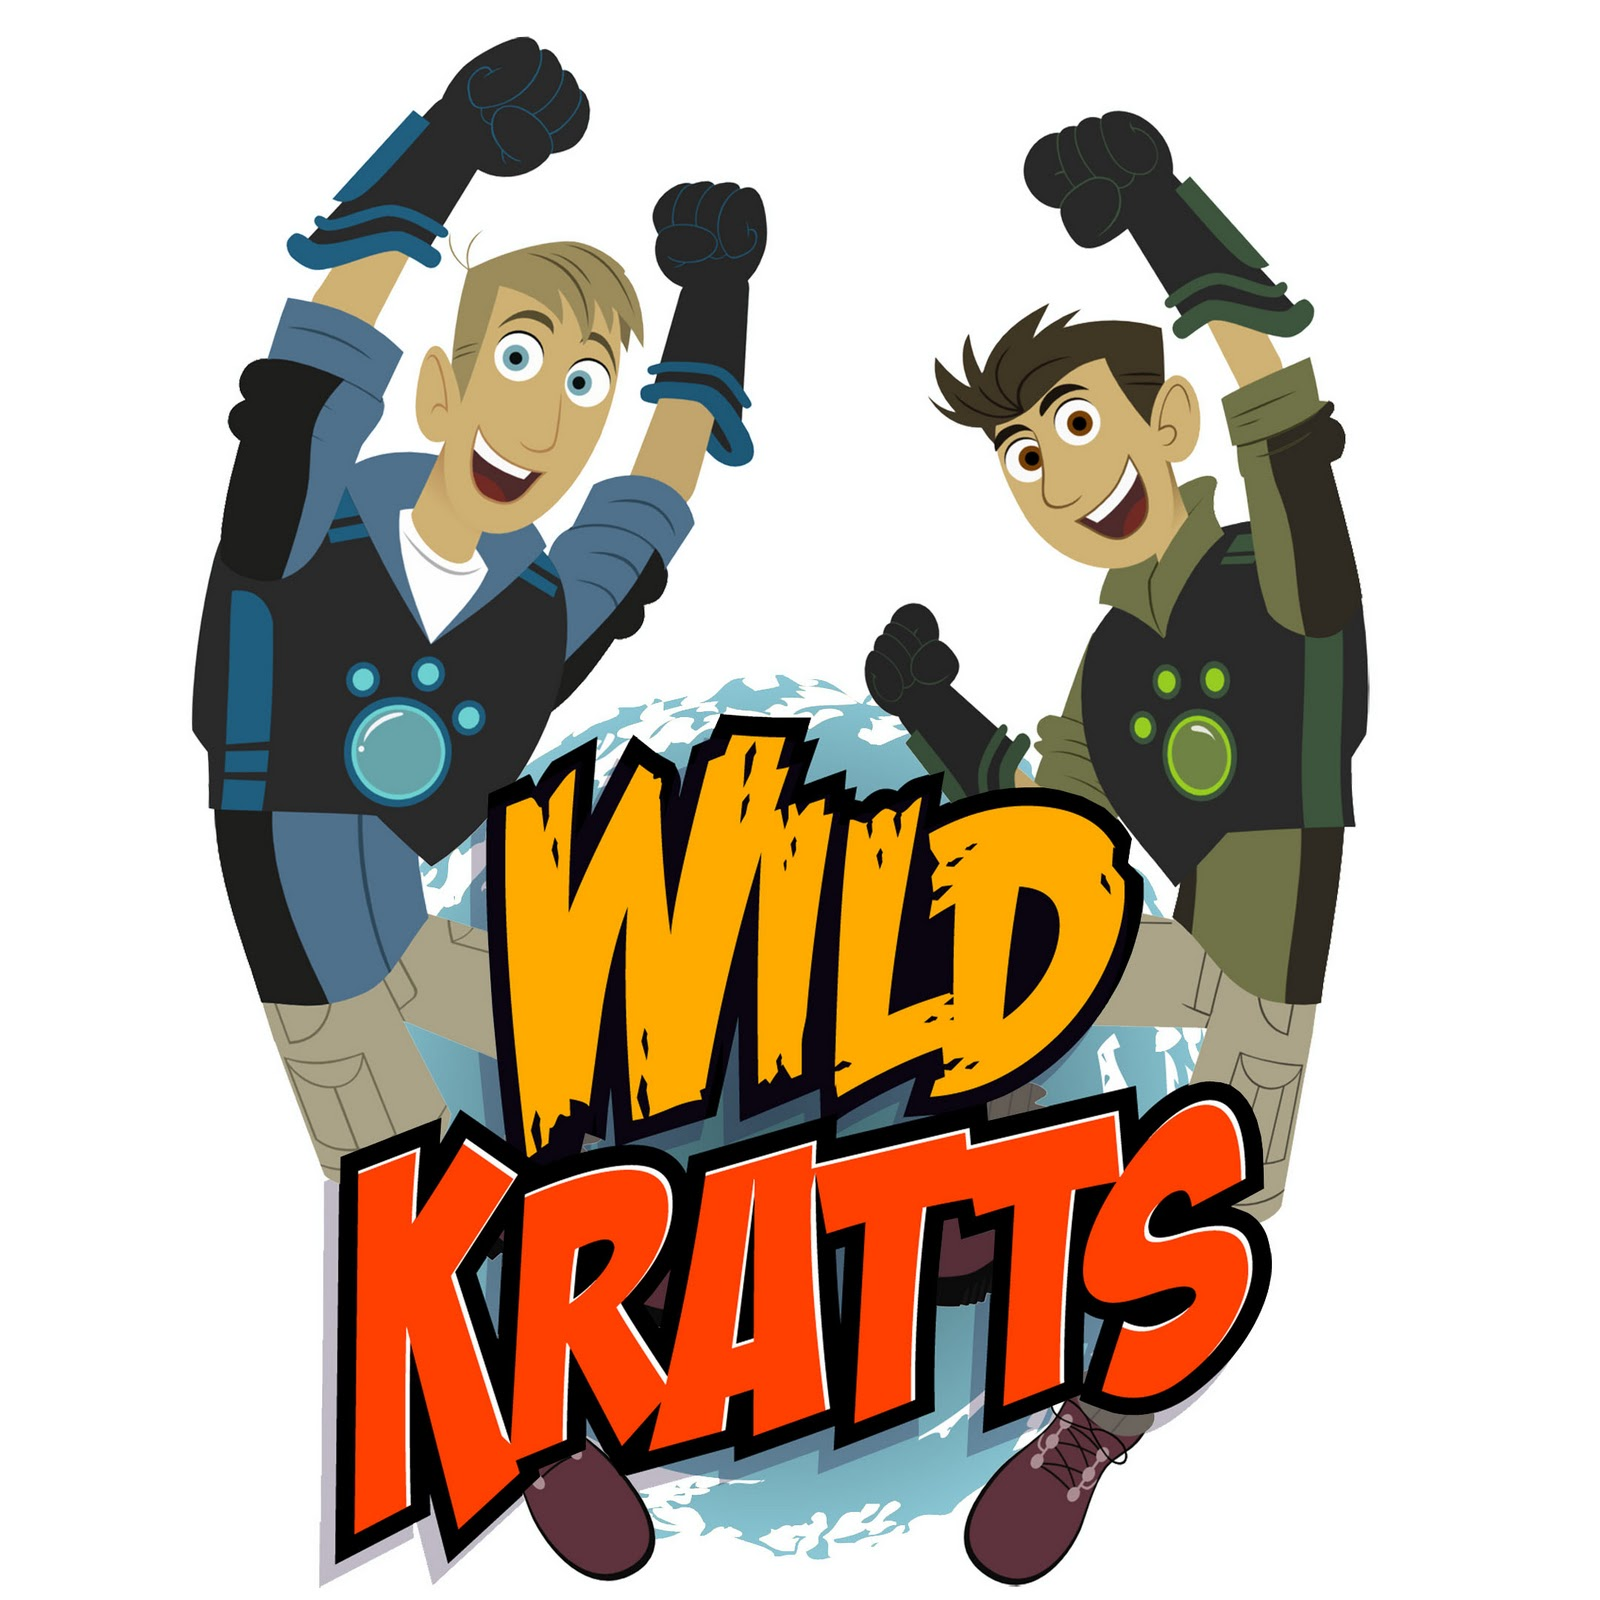 Big Comfy Couch Imdb Write At Home Wild Kratts Come To Pbs Kids Go